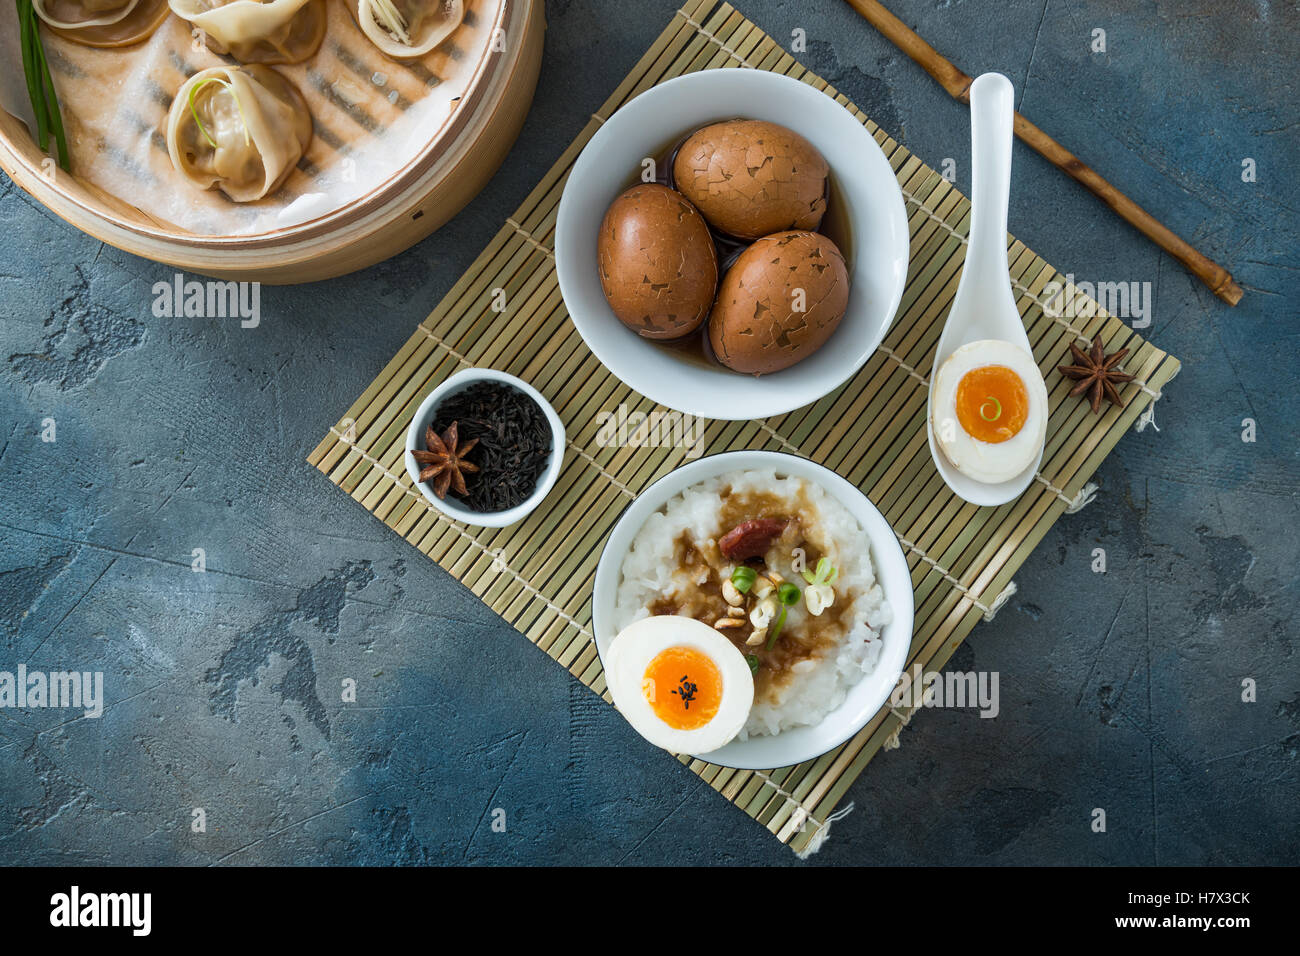 Chinese Streamed Dumpling with tea eggs and porrige Stock Photo